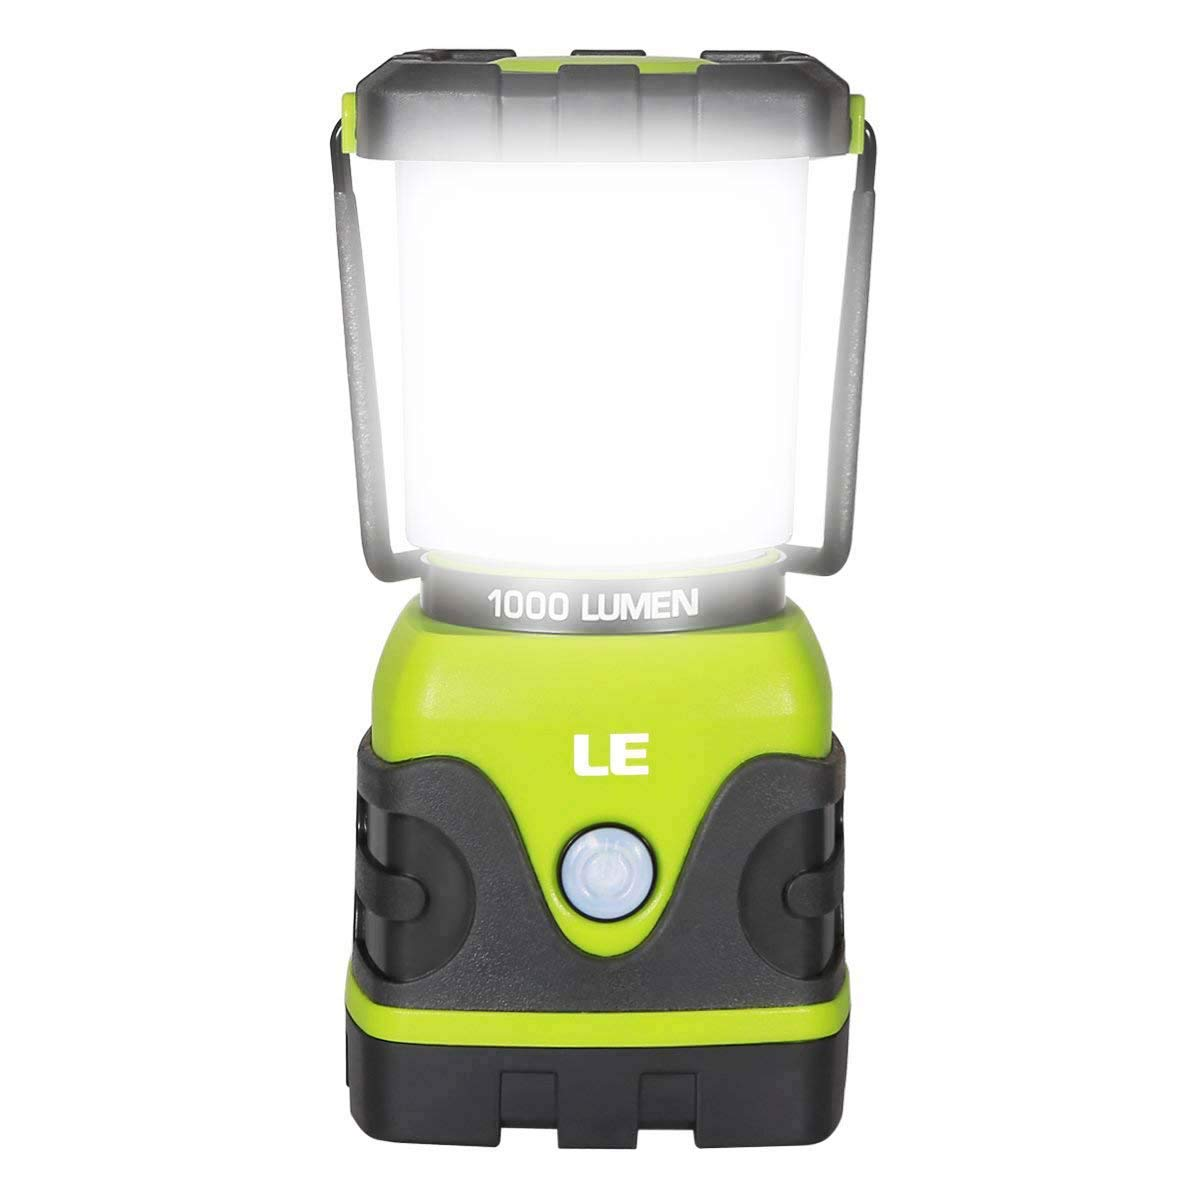 LE LED Camping Lantern, Battery Powered LED with 1000LM, 4 Light Modes, Waterproof Tent Light, Perfect Lantern Flashlight for Hurricane, Emergency, Survival Kits, Hiking, Fishing, Home and More by Lighting EVER